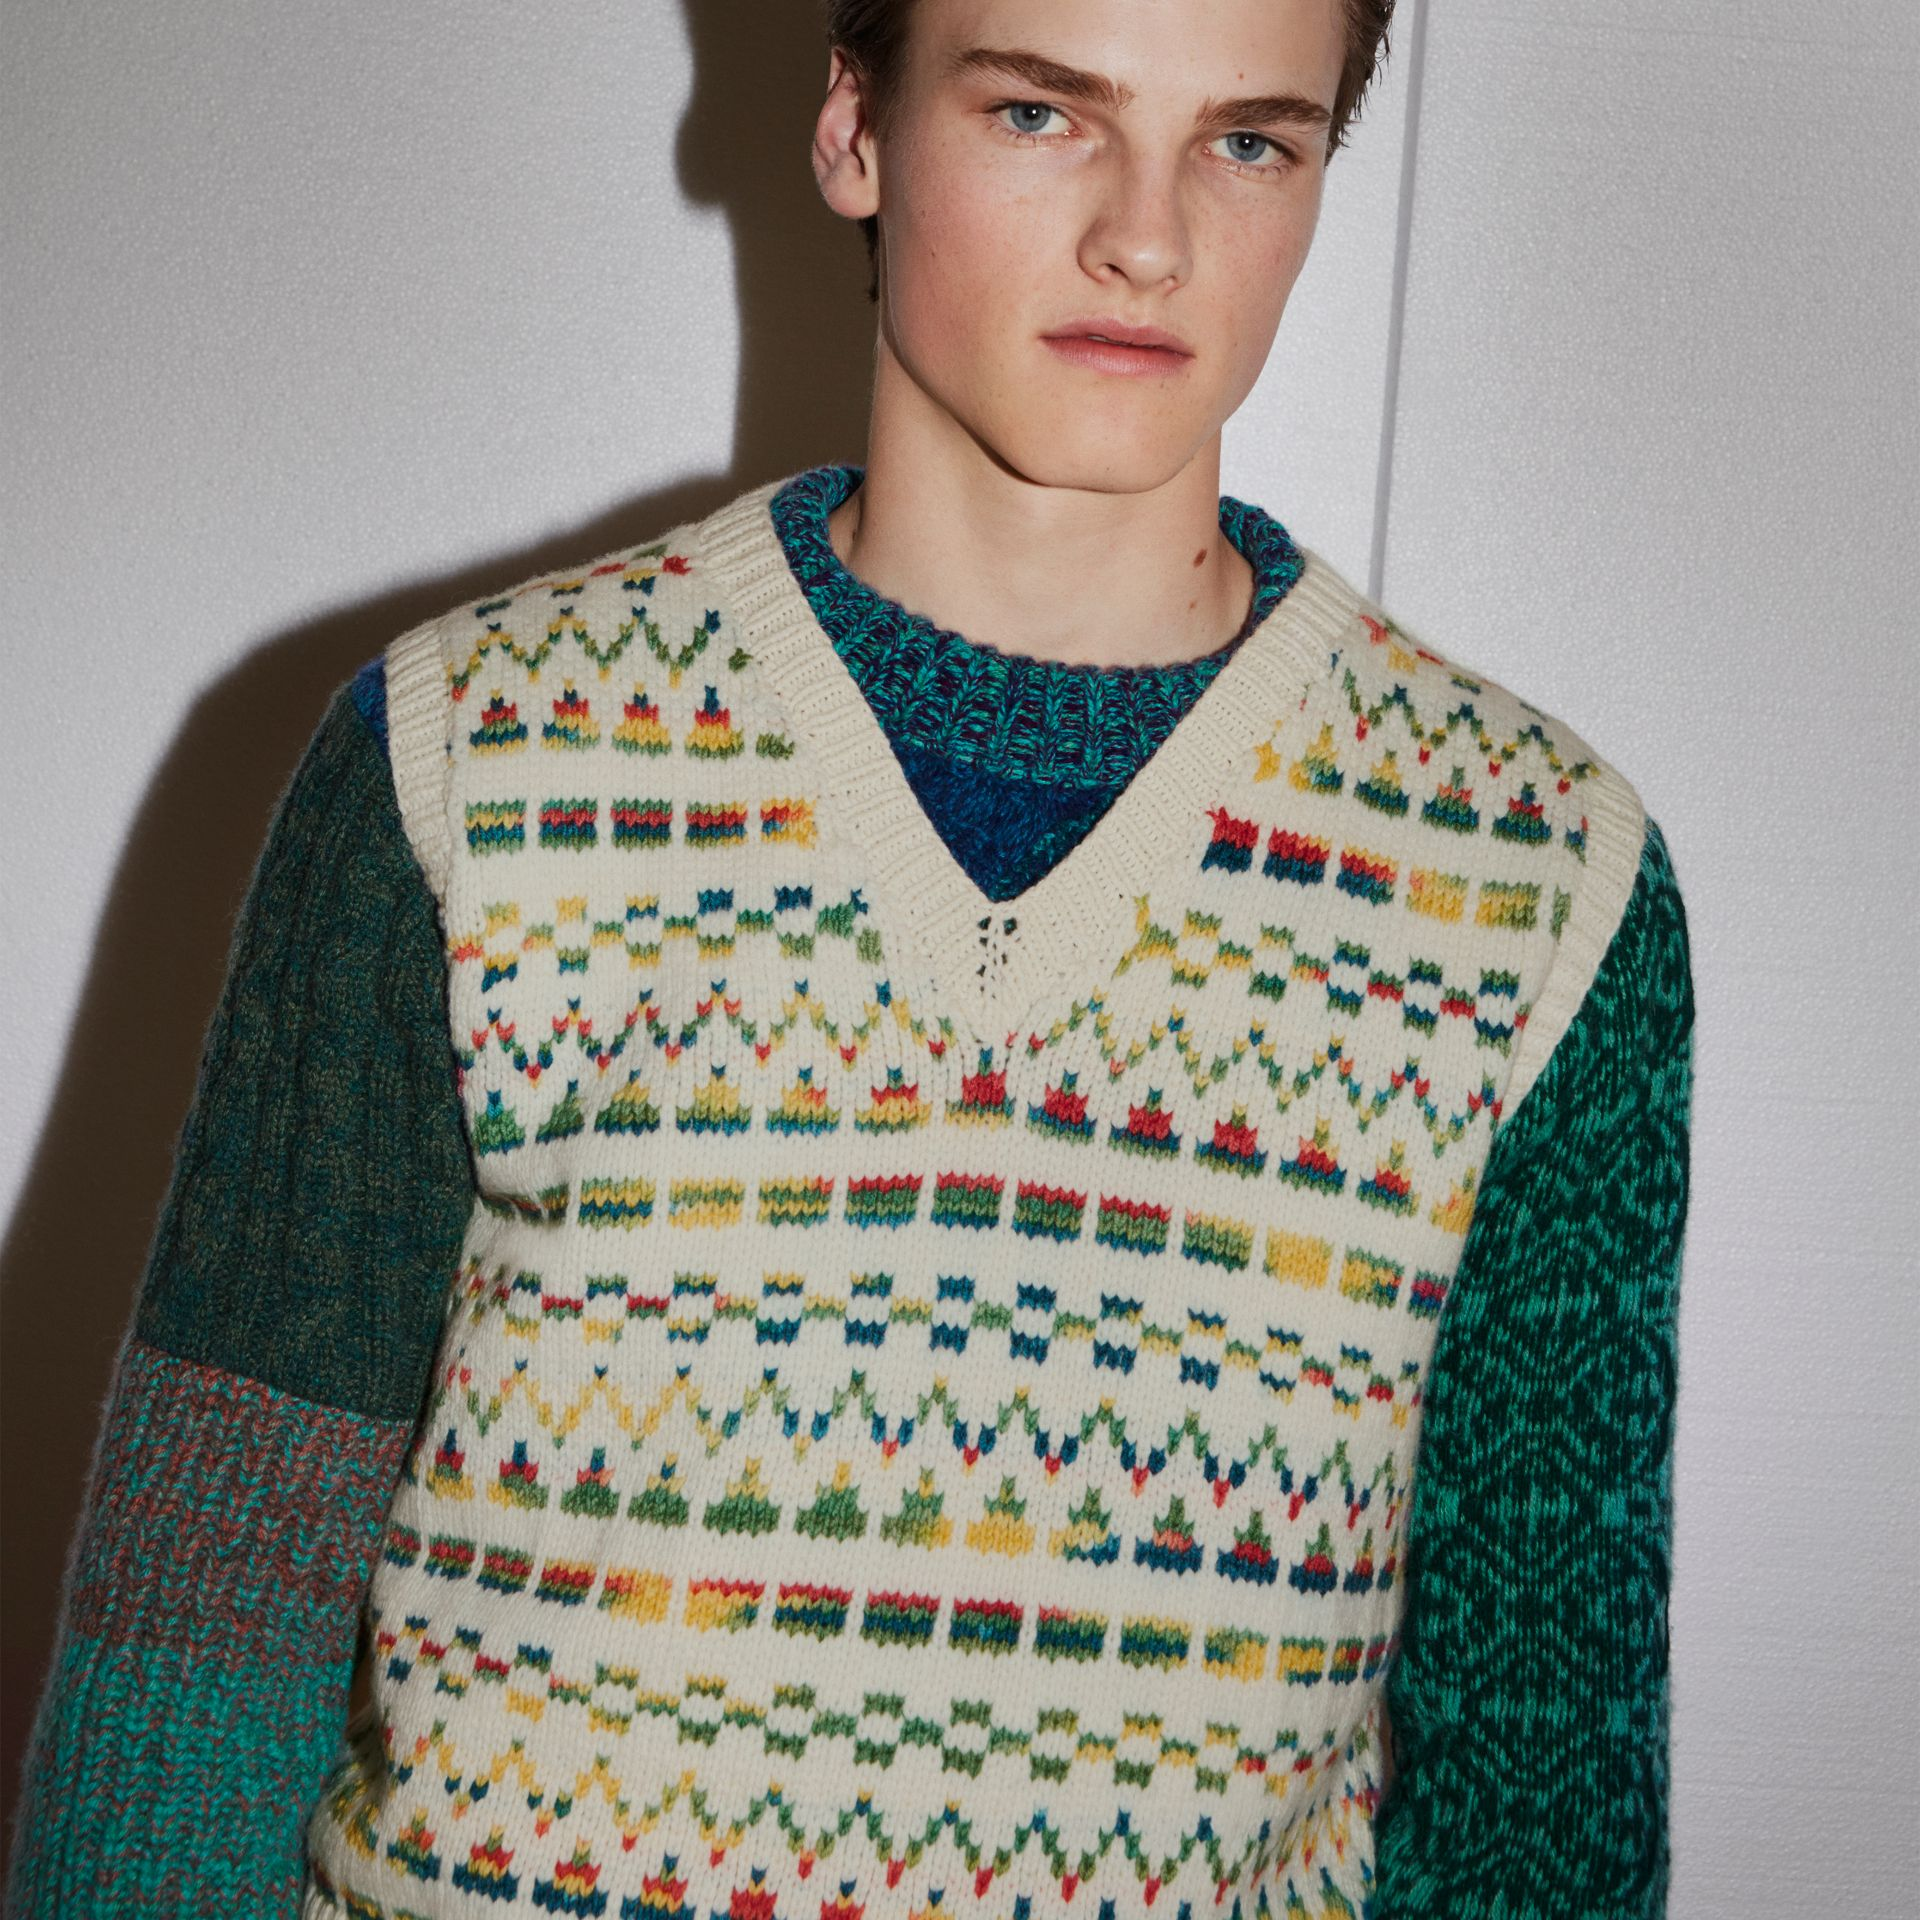 Cashmere Wool Mouliné Patchwork Sweater in Hydrangea Blue - Men | Burberry - gallery image 3